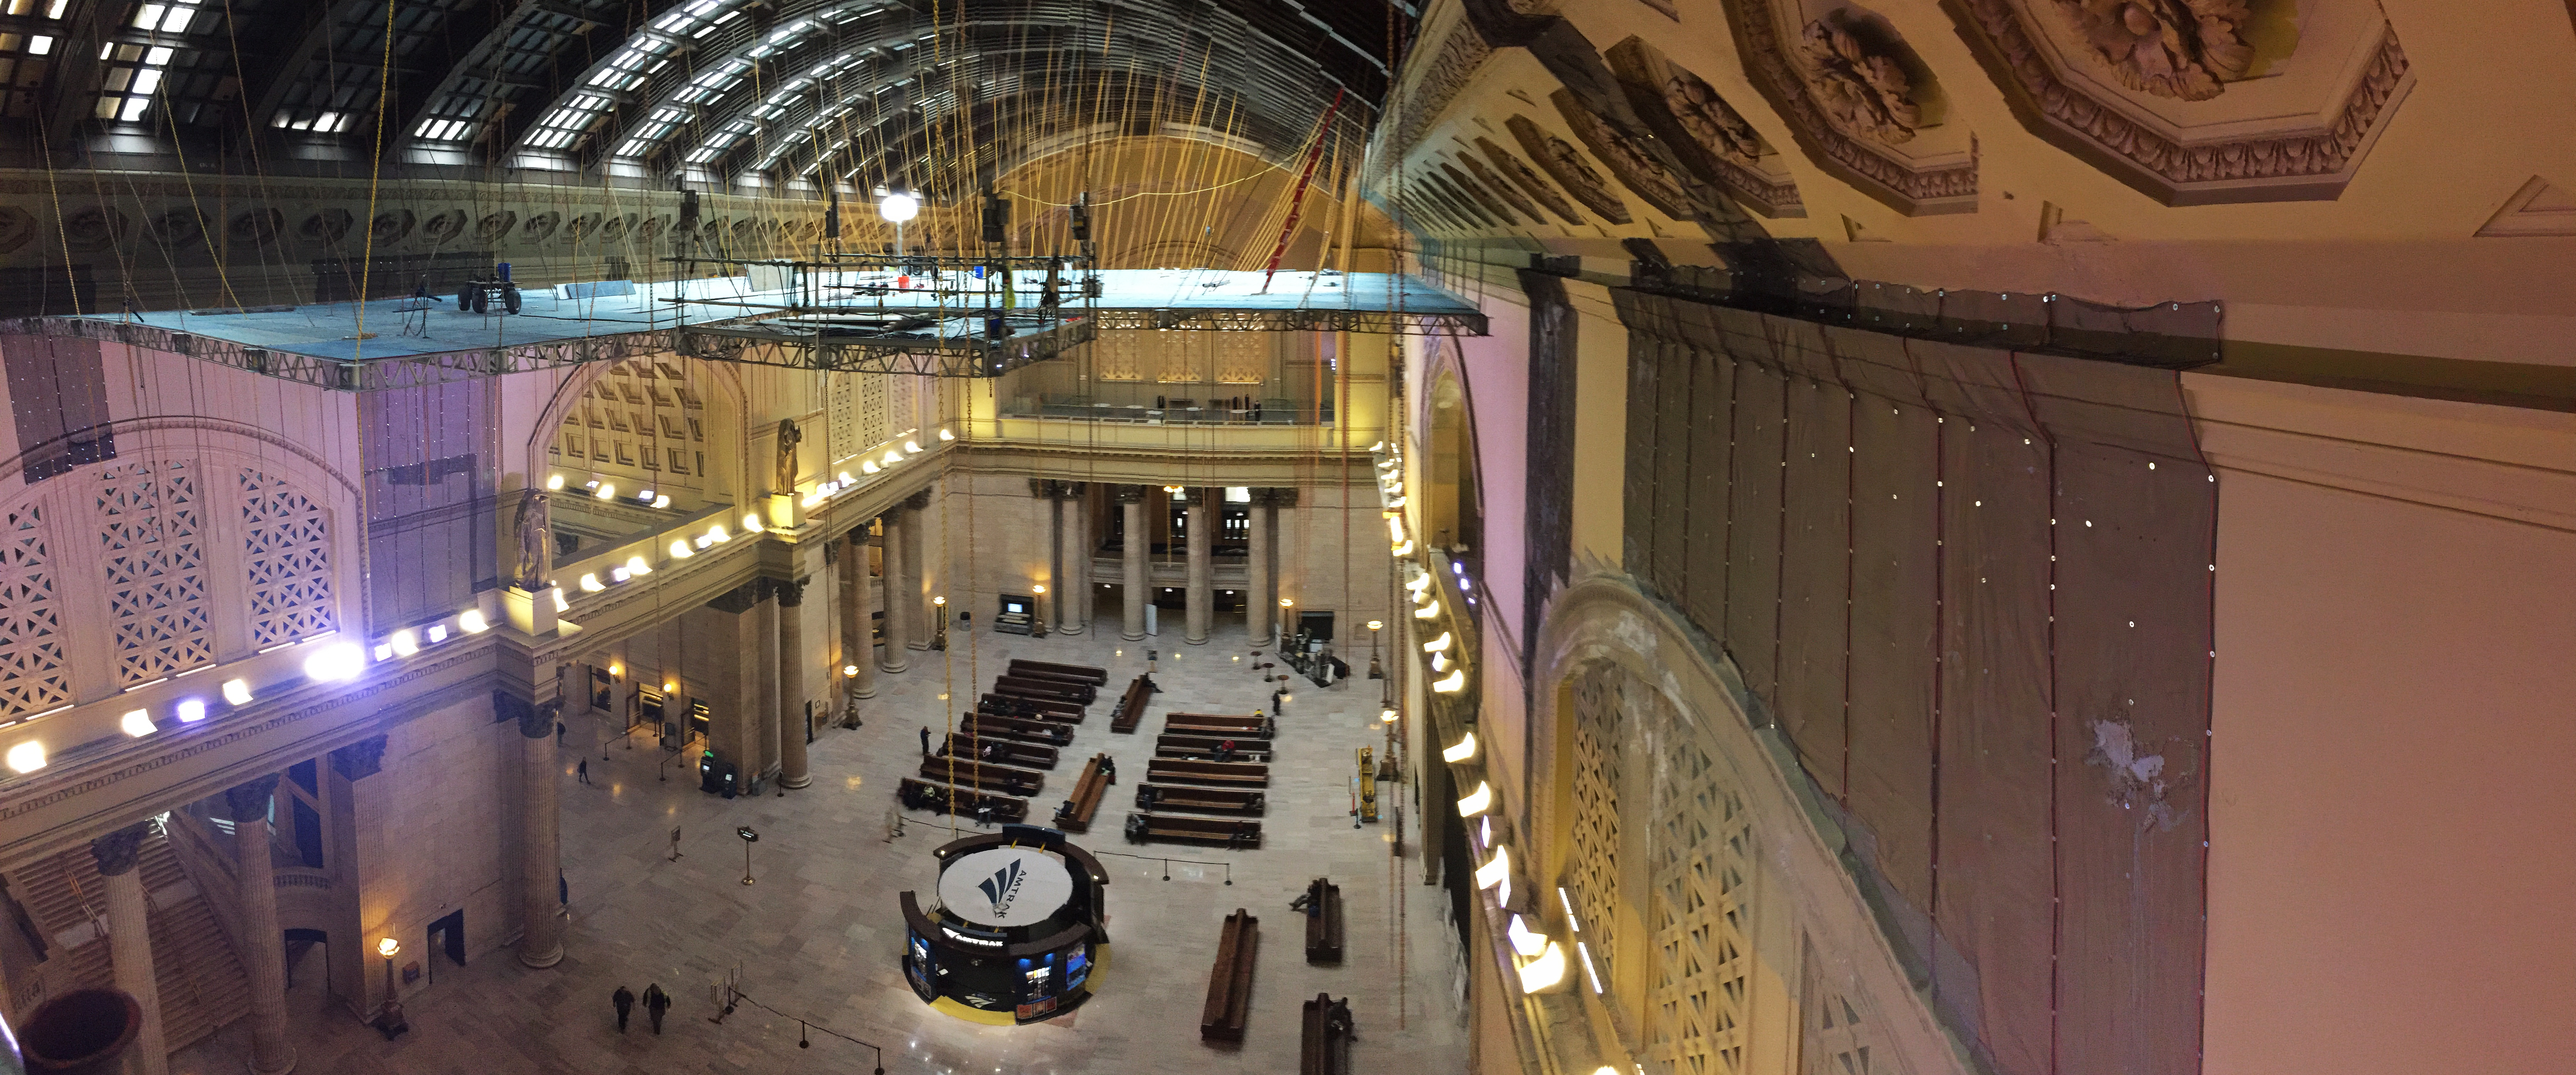 Union Station's historic Great Hall shows off restored skylight, plaster, and statues